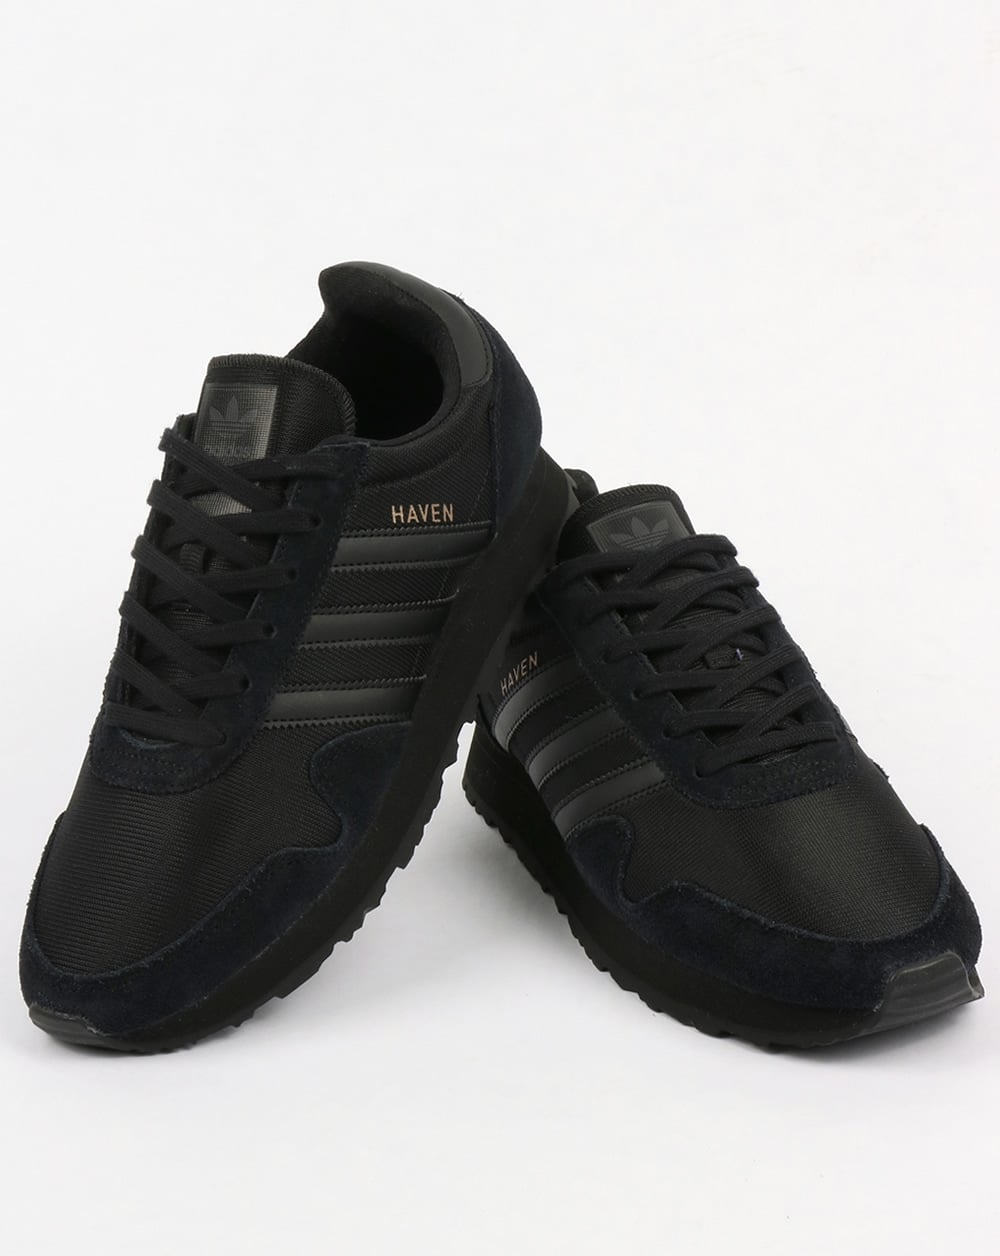 Adidas Haven Trainers Black,originals,shoes,runners